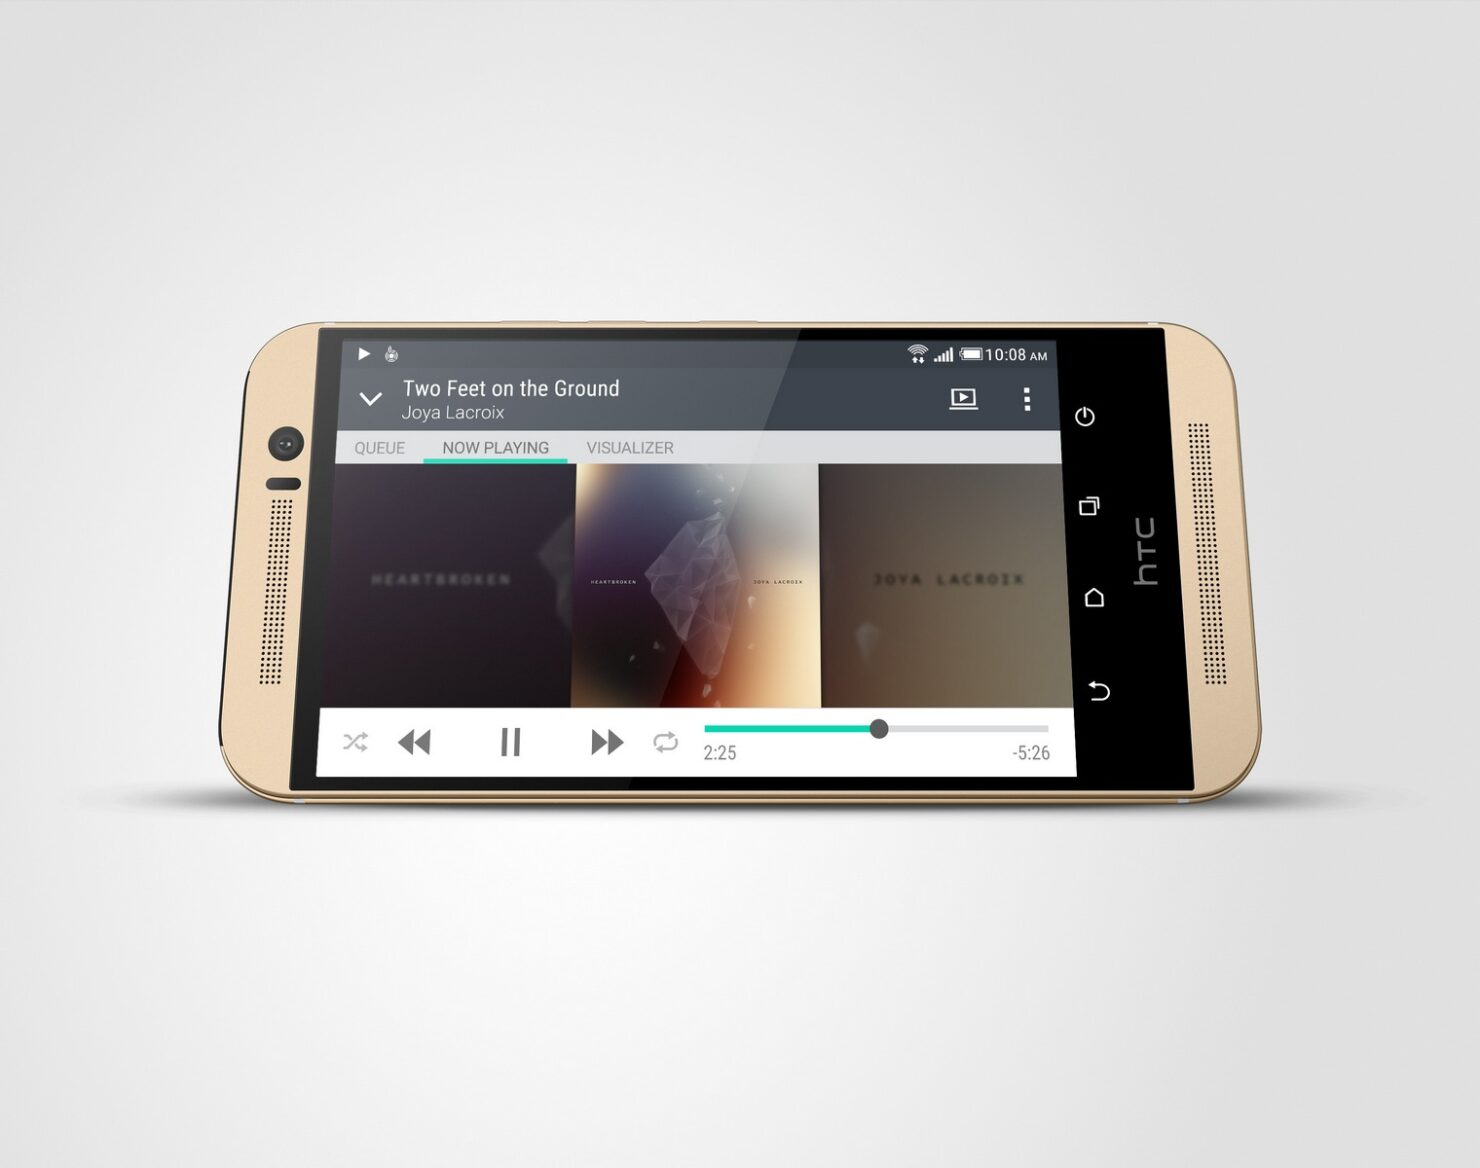 htc-one-m9-all-the-official-images-5